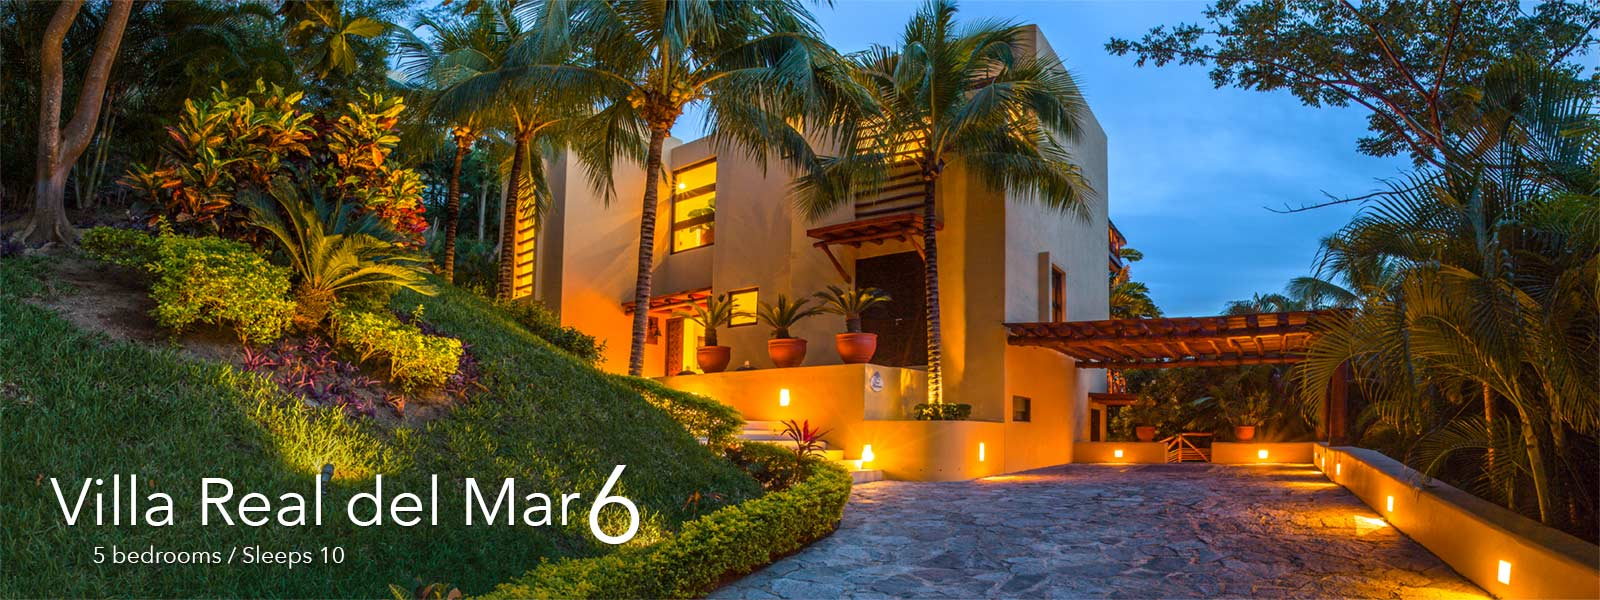 Villa Real del Mar 6 - Punta de Mita Luxury Real Estate and Vacation Rentals - Mexico